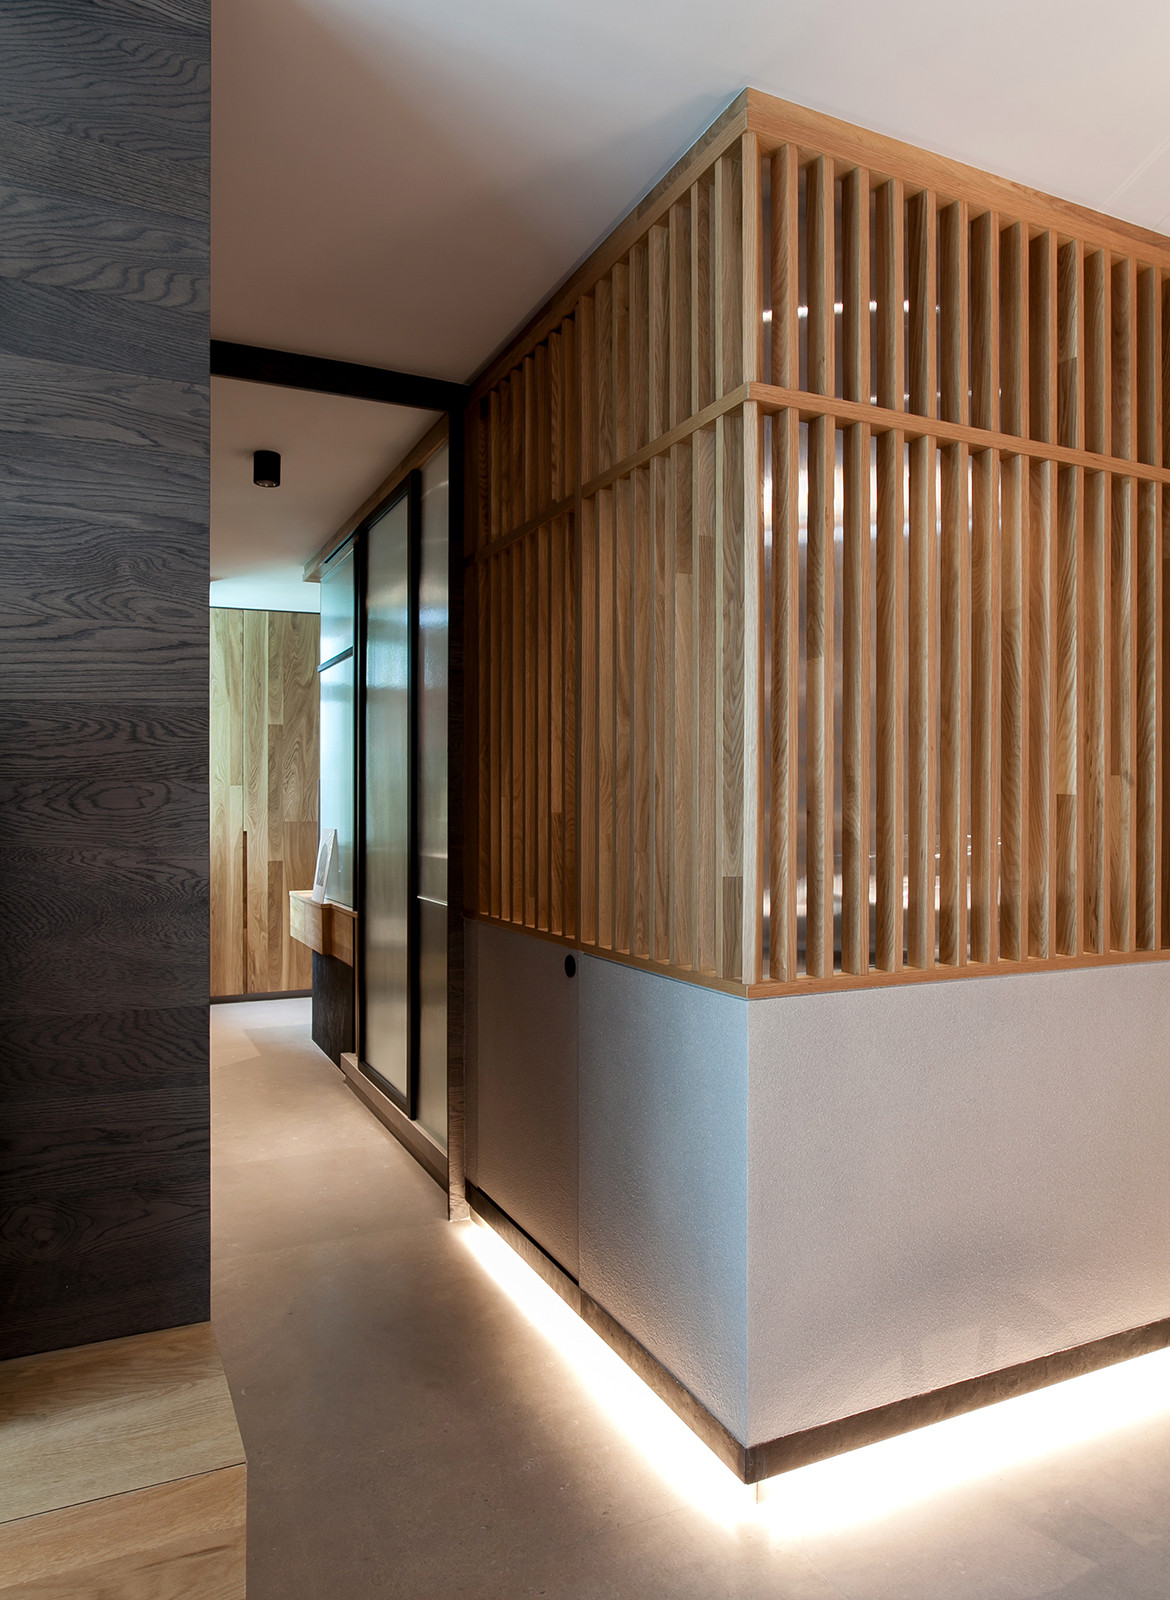 Taikoo Shing Apartment Studio Adjective lighting skirting timber battens textures